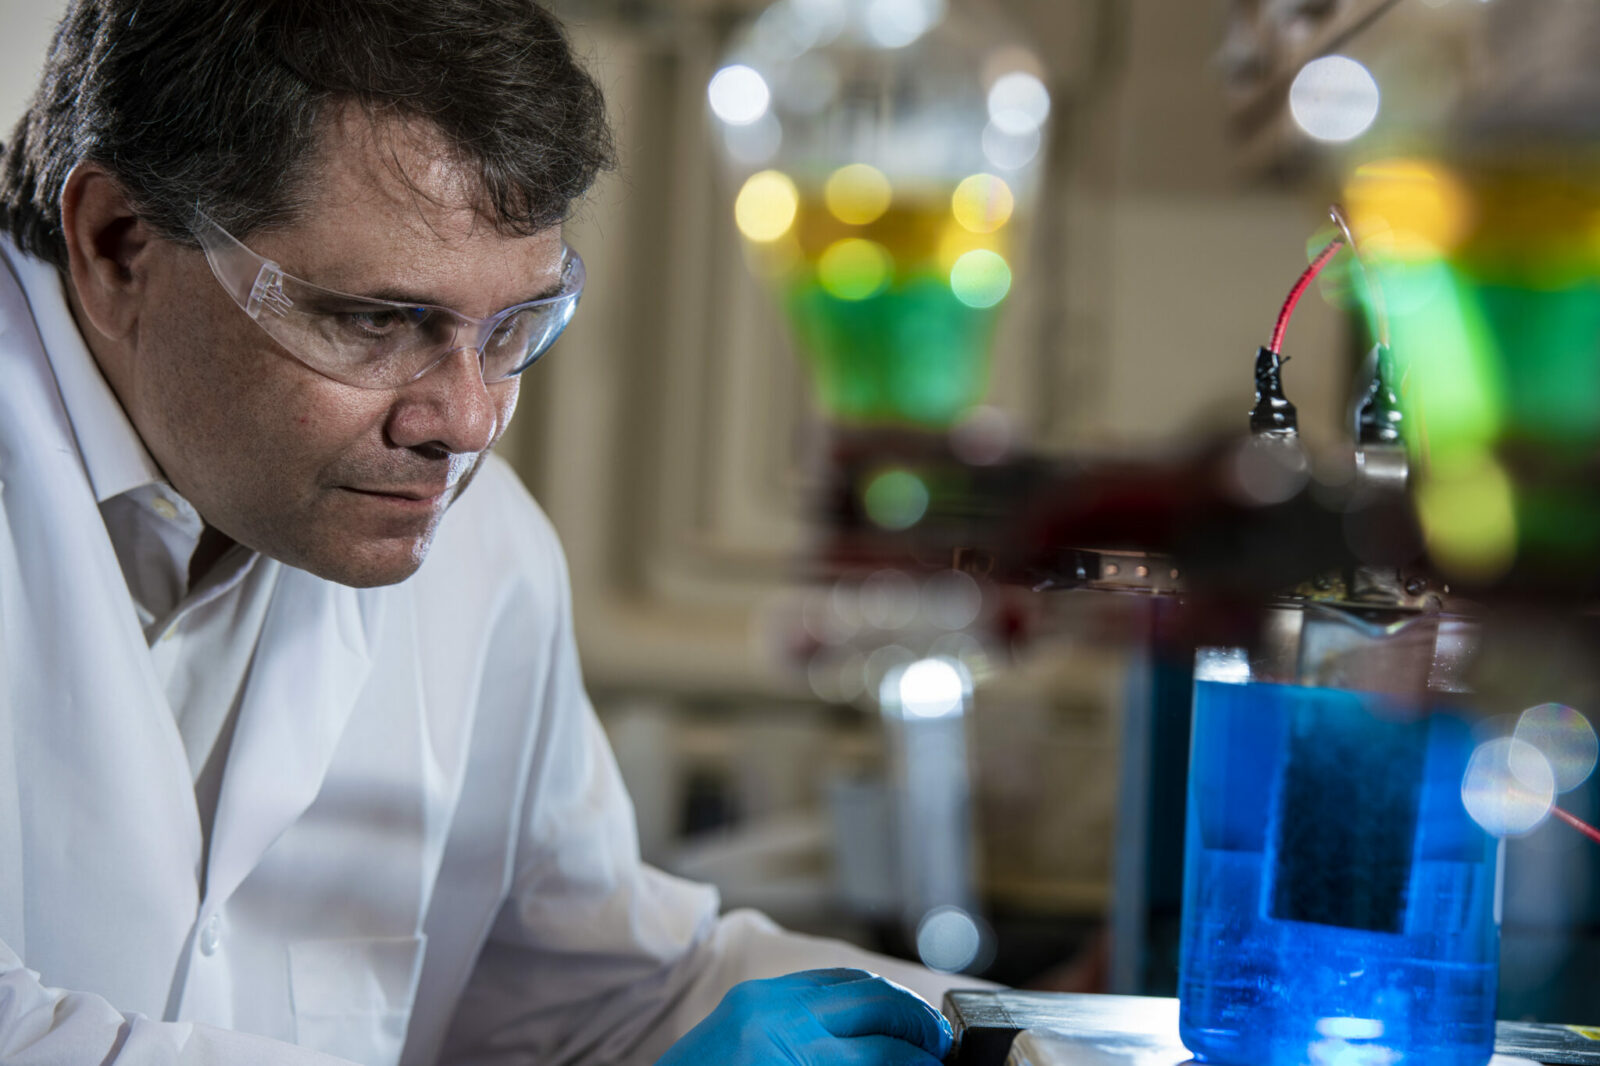 Photo of Dr. Michael Moats conducting research in lab